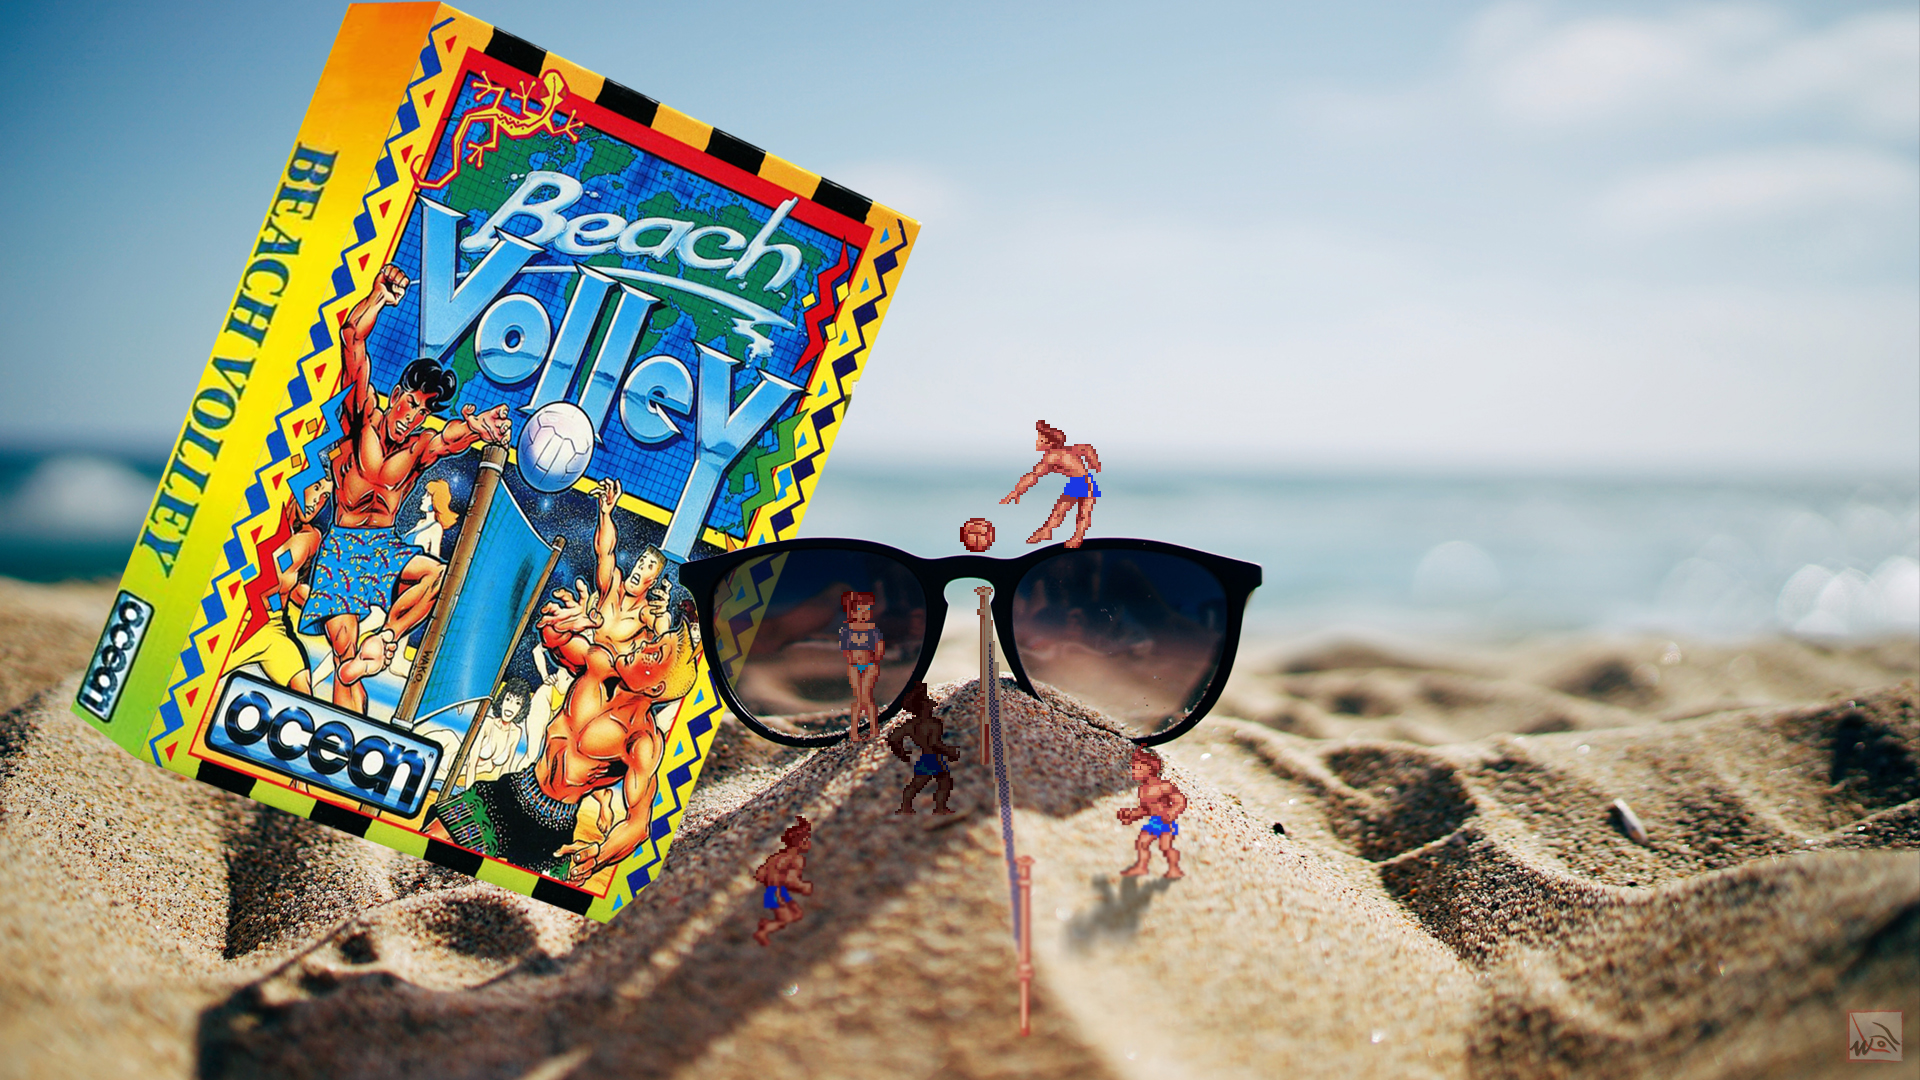 """""""Beach Volley"""" from Ocean Software"""